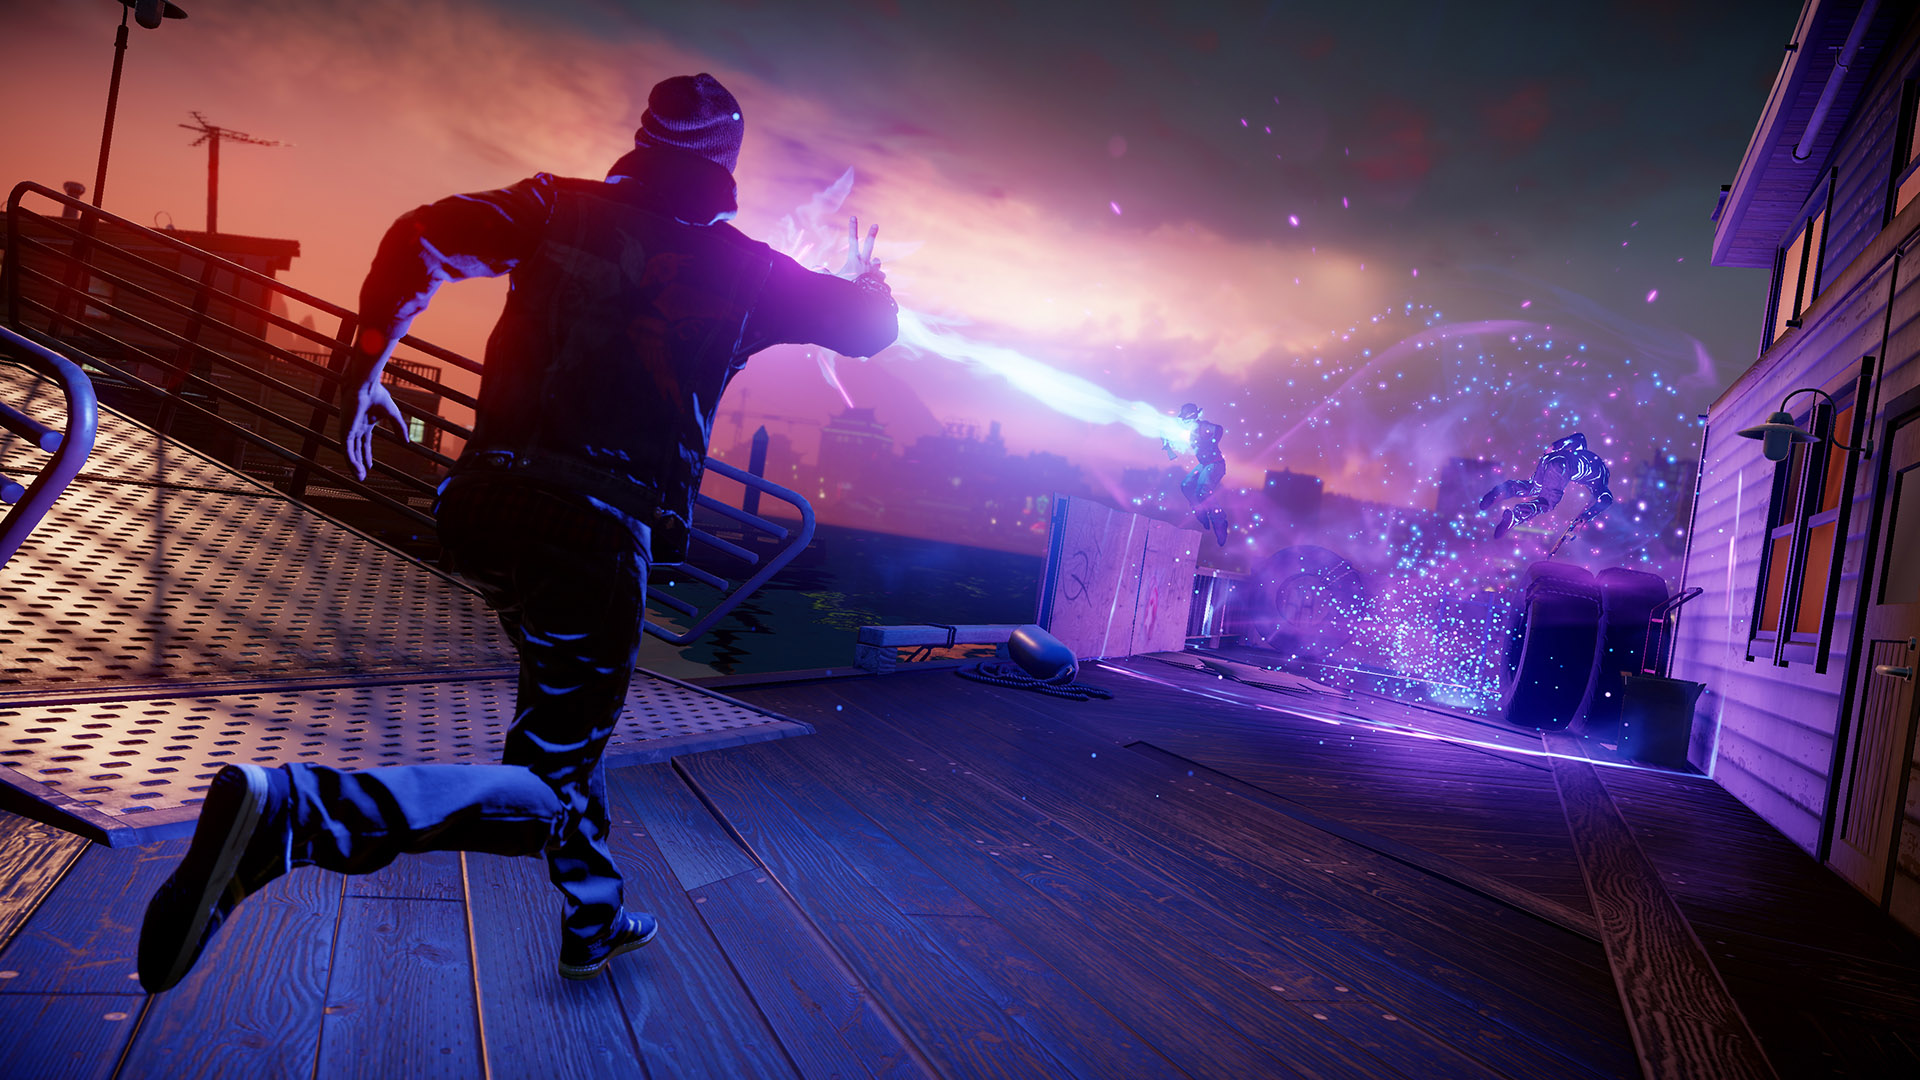 review_off_infamous2 (2)